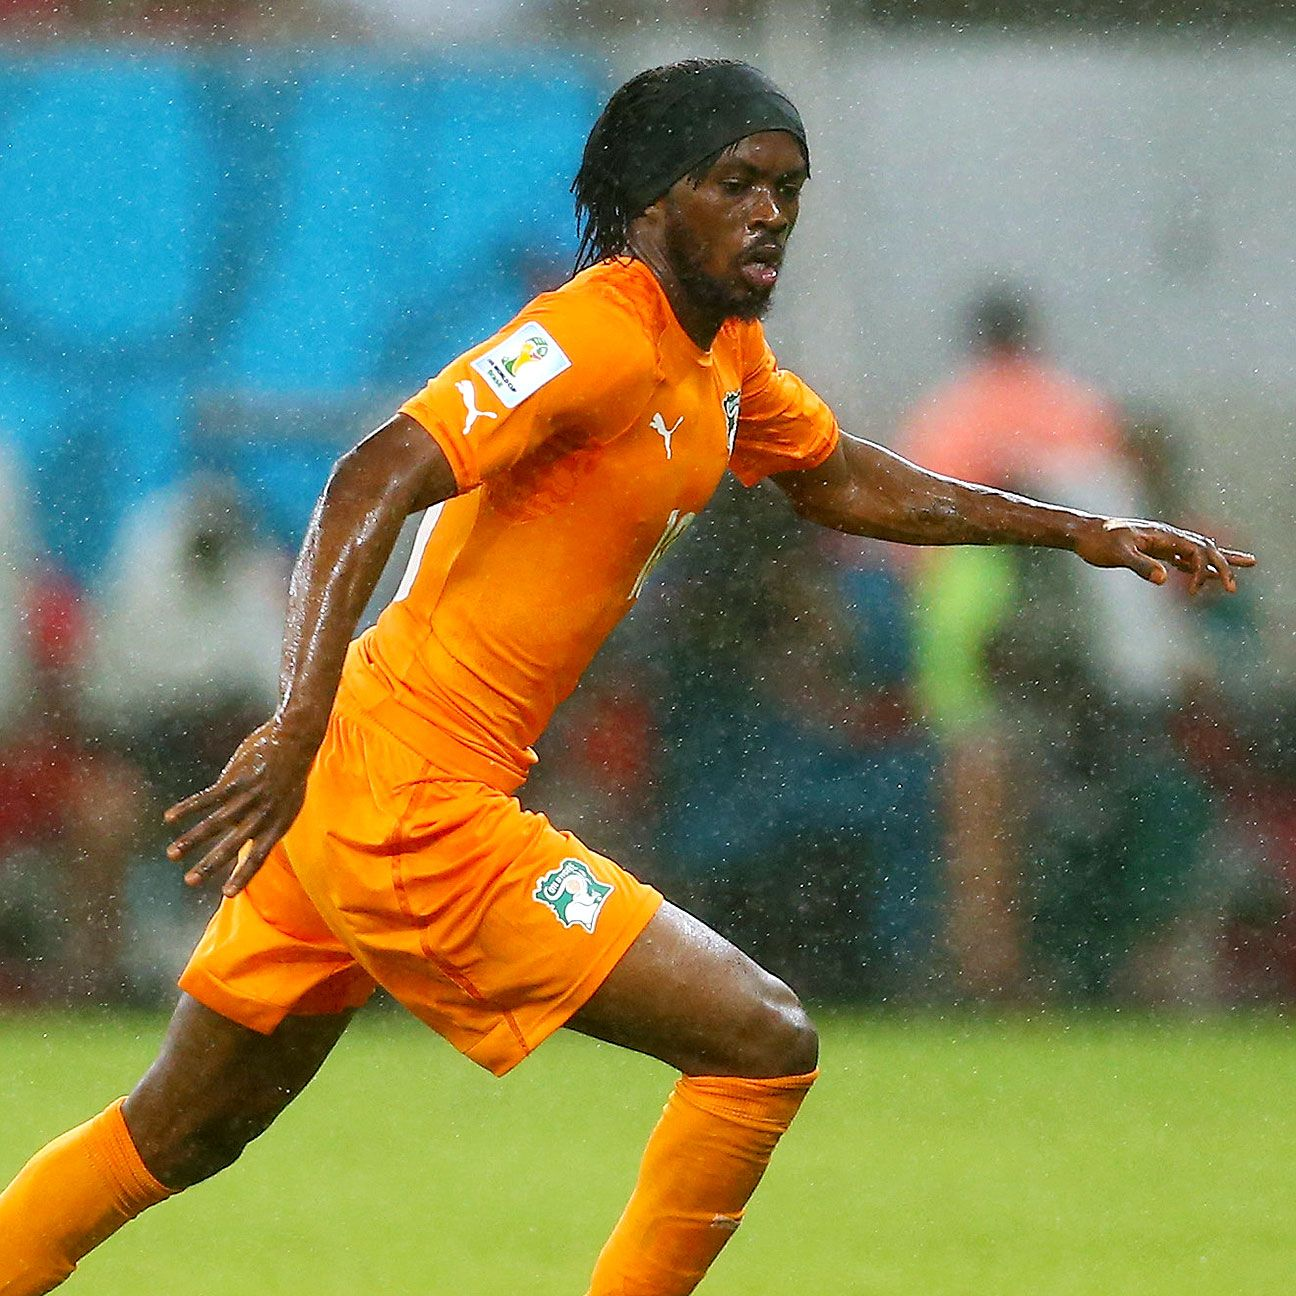 Gervinho scored the Ivory Coast's winner against Japan.